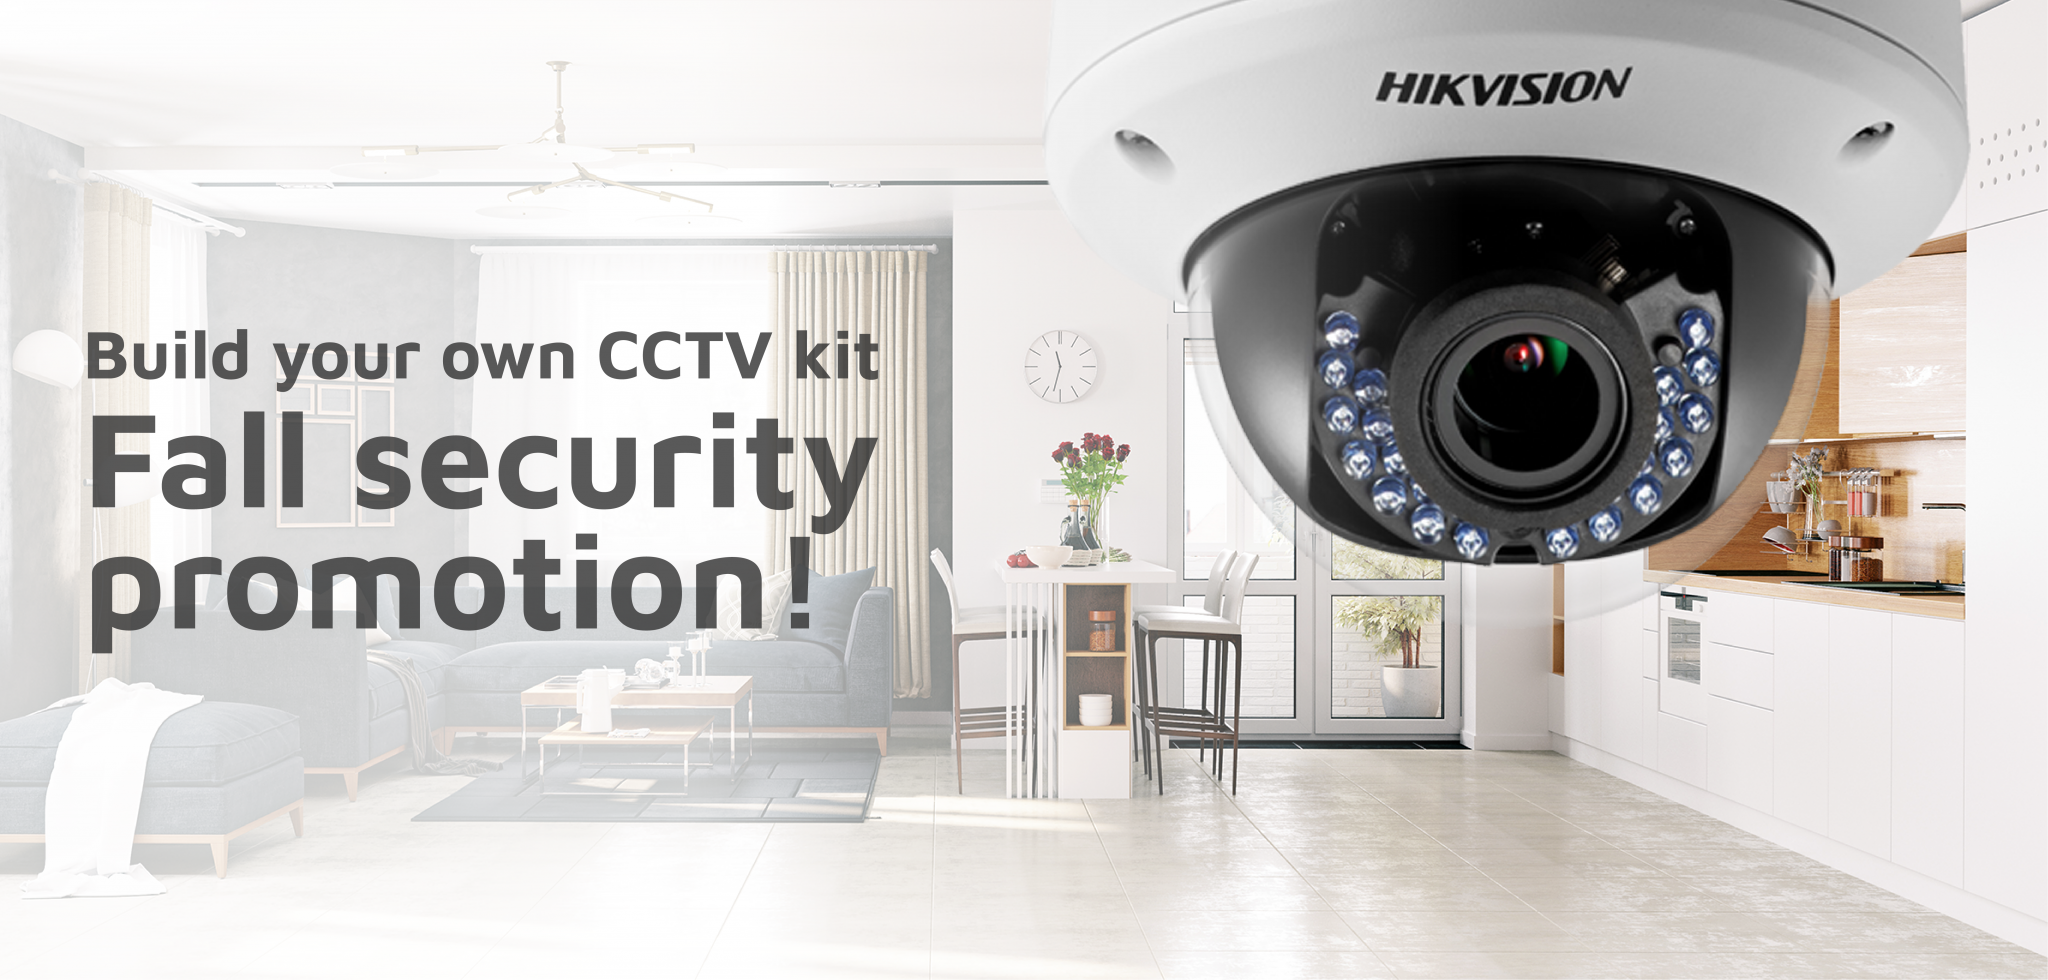 Three West Security Systems Kelowna services commercial and home security systems